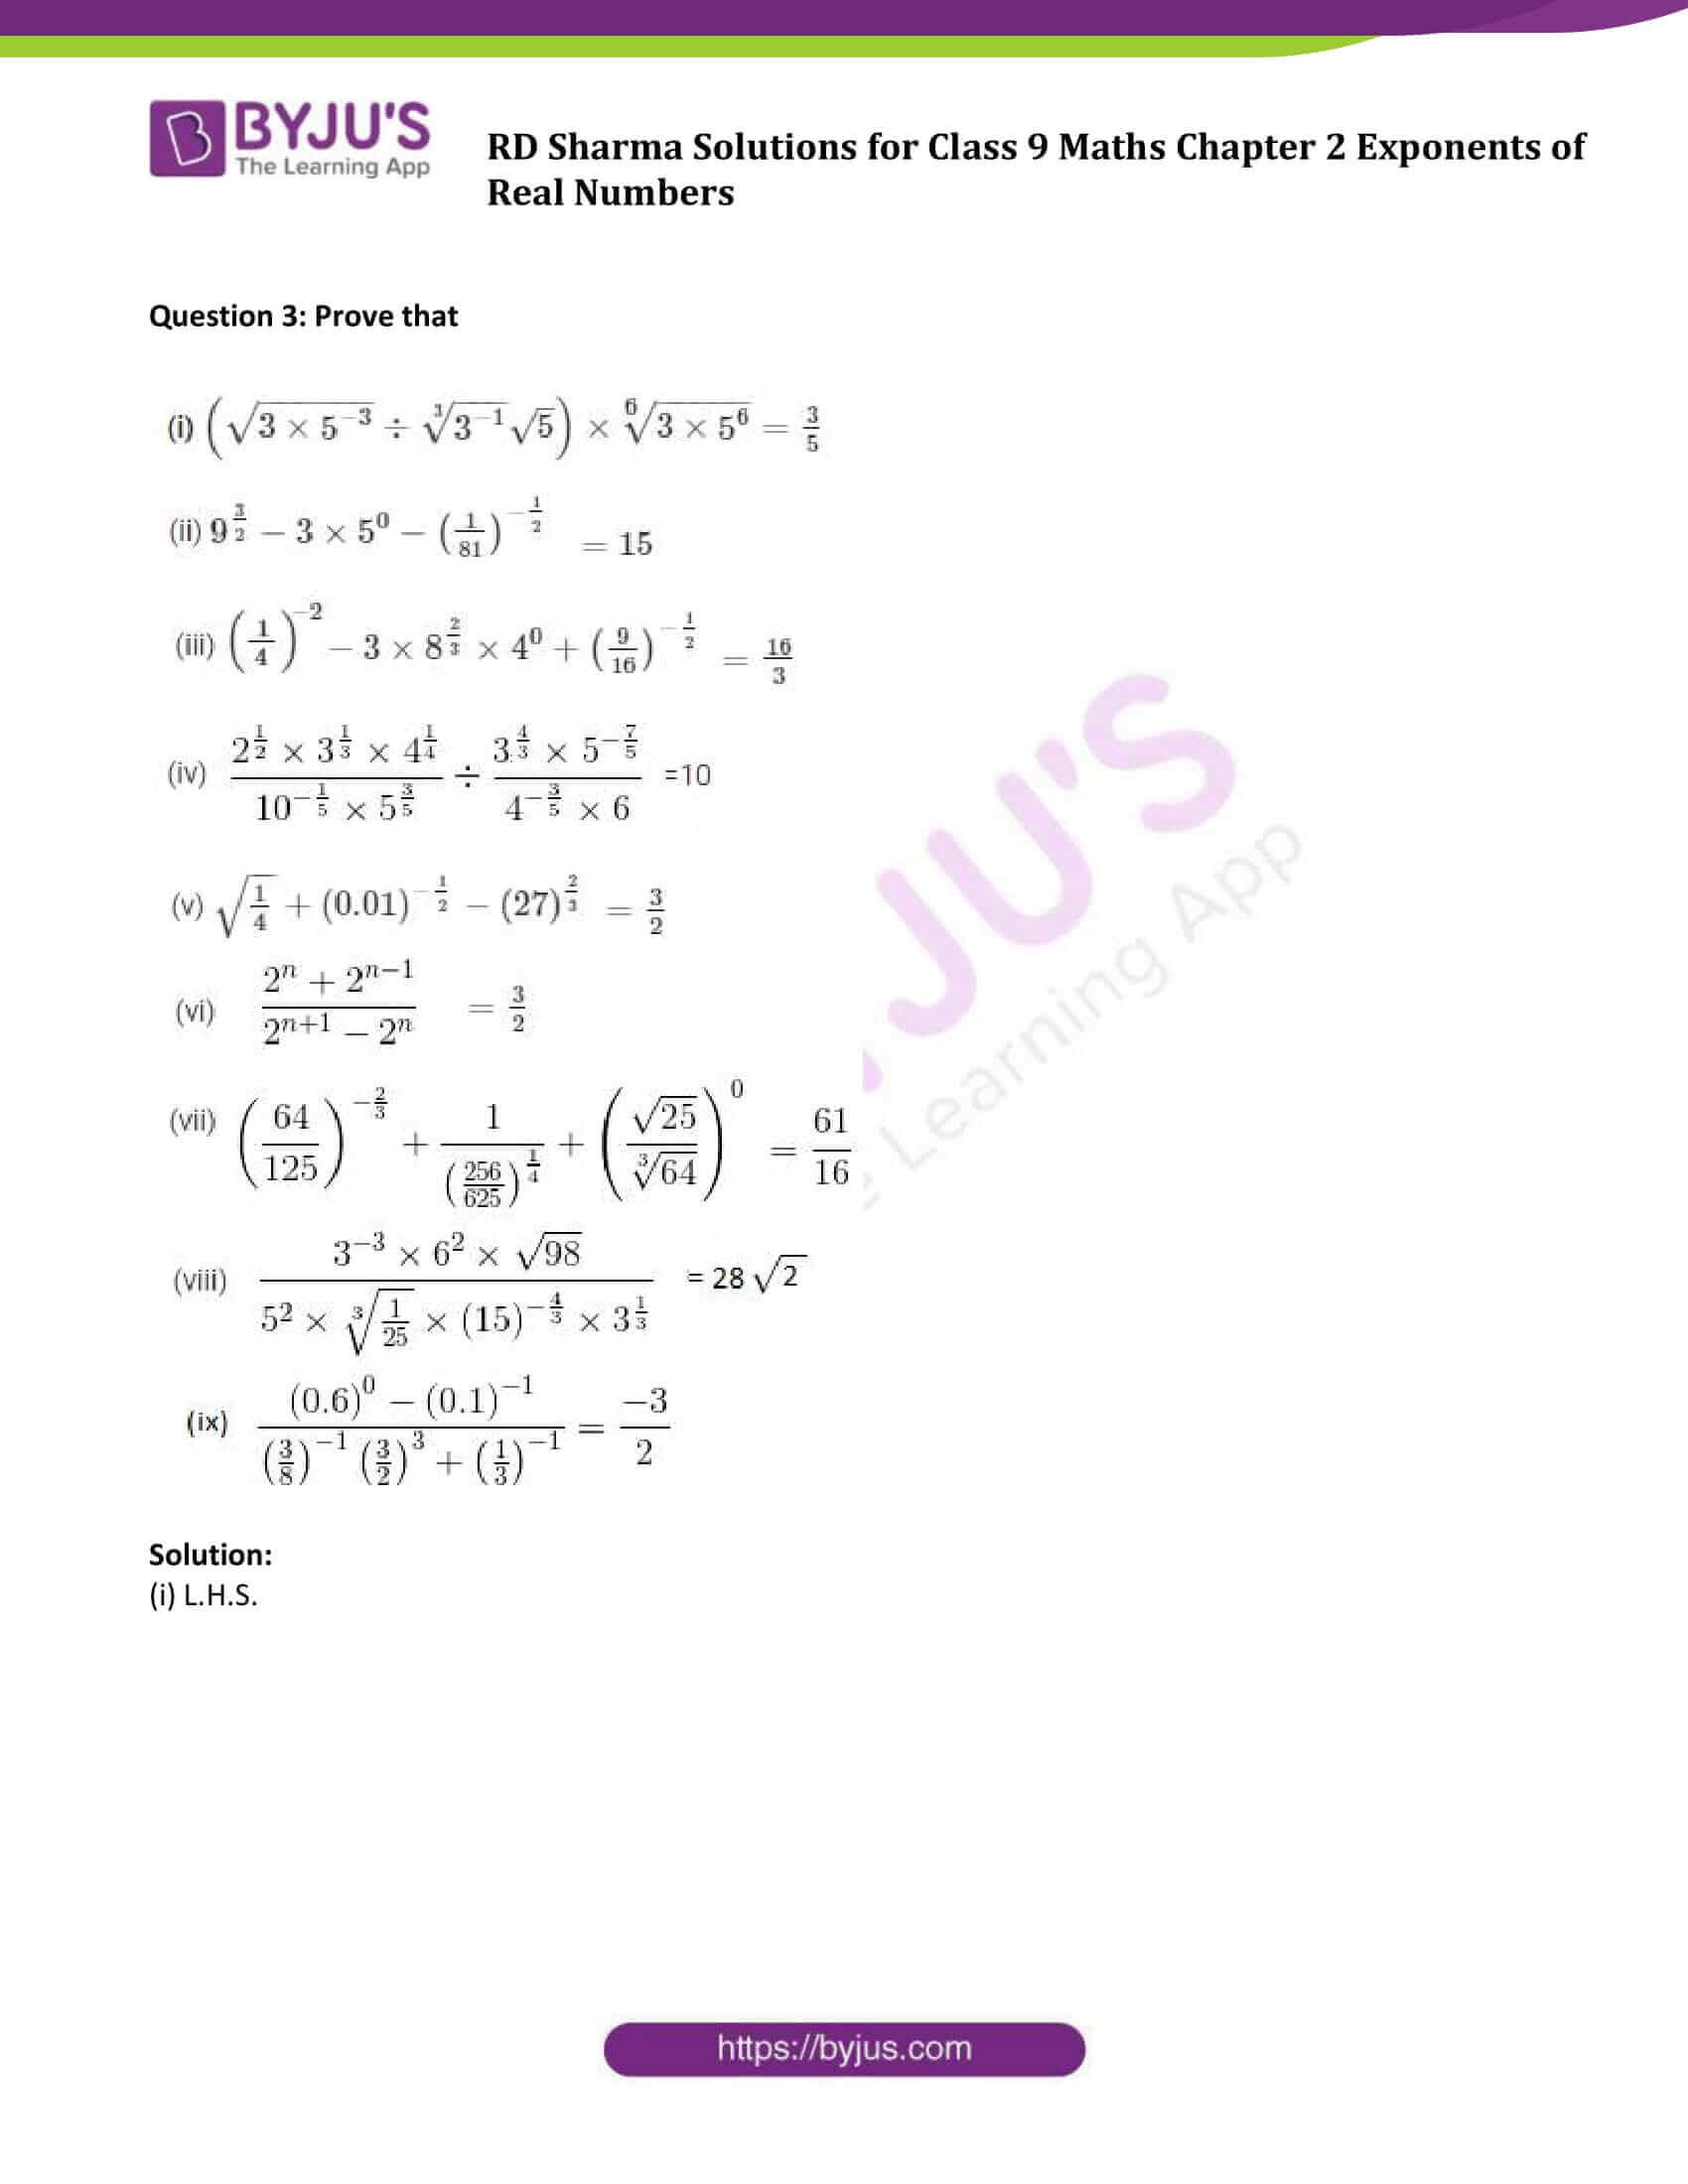 RD Sharma Solution class 9 Maths Chapter 2 Exponents of Real Numbers 14